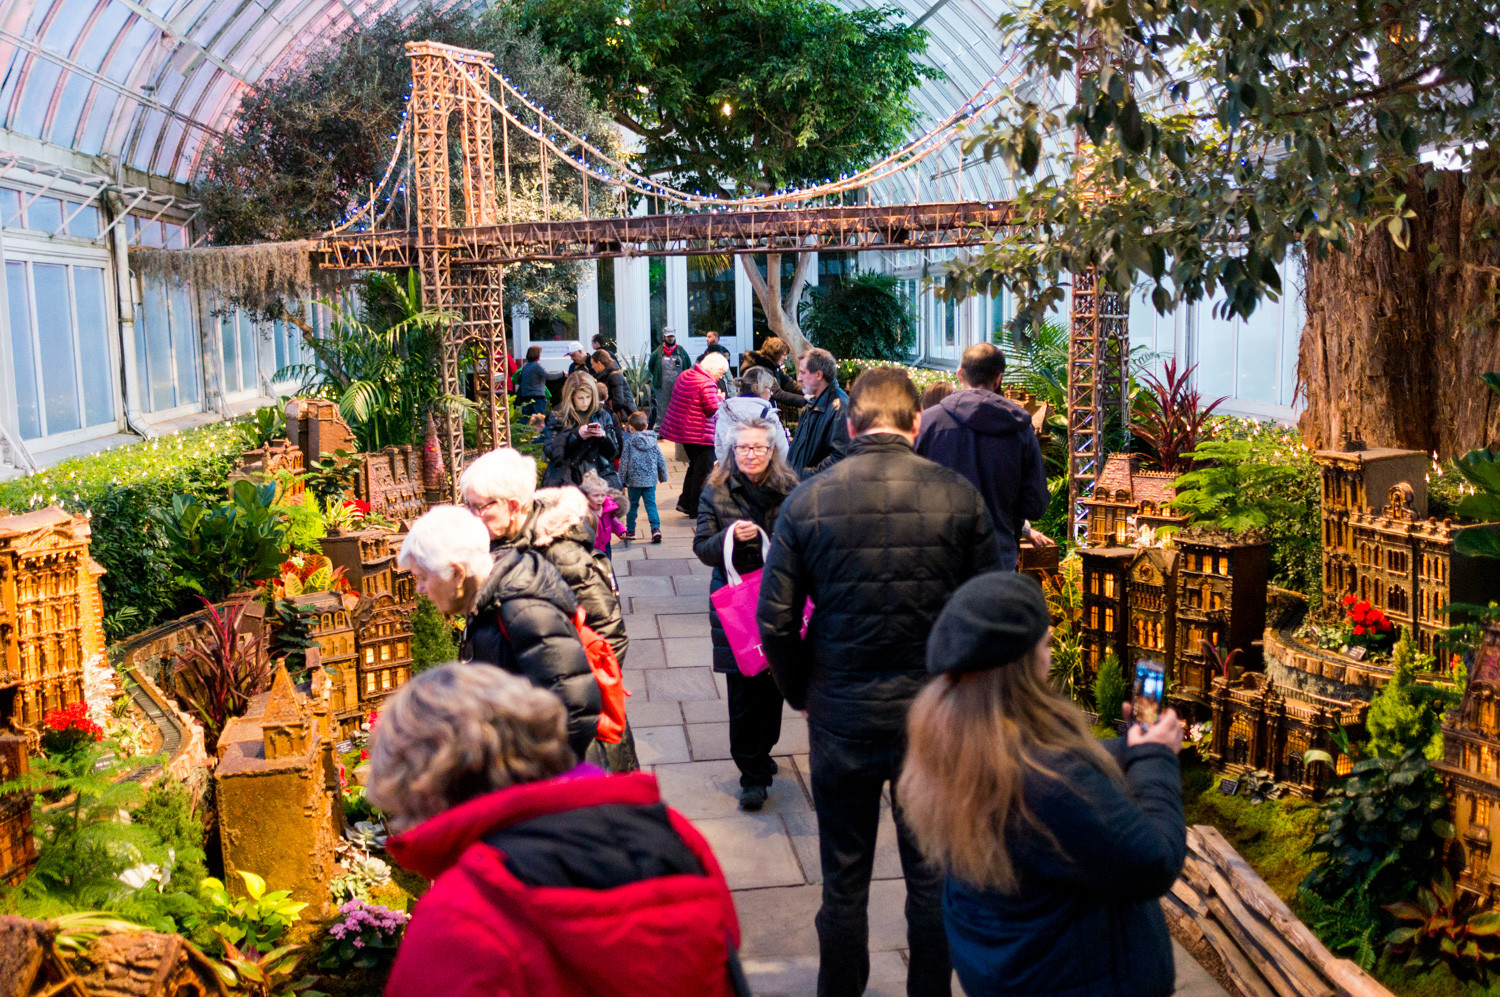 Patrons watch the trains go by in the Holiday Train Show at the New York Botanical Garden.